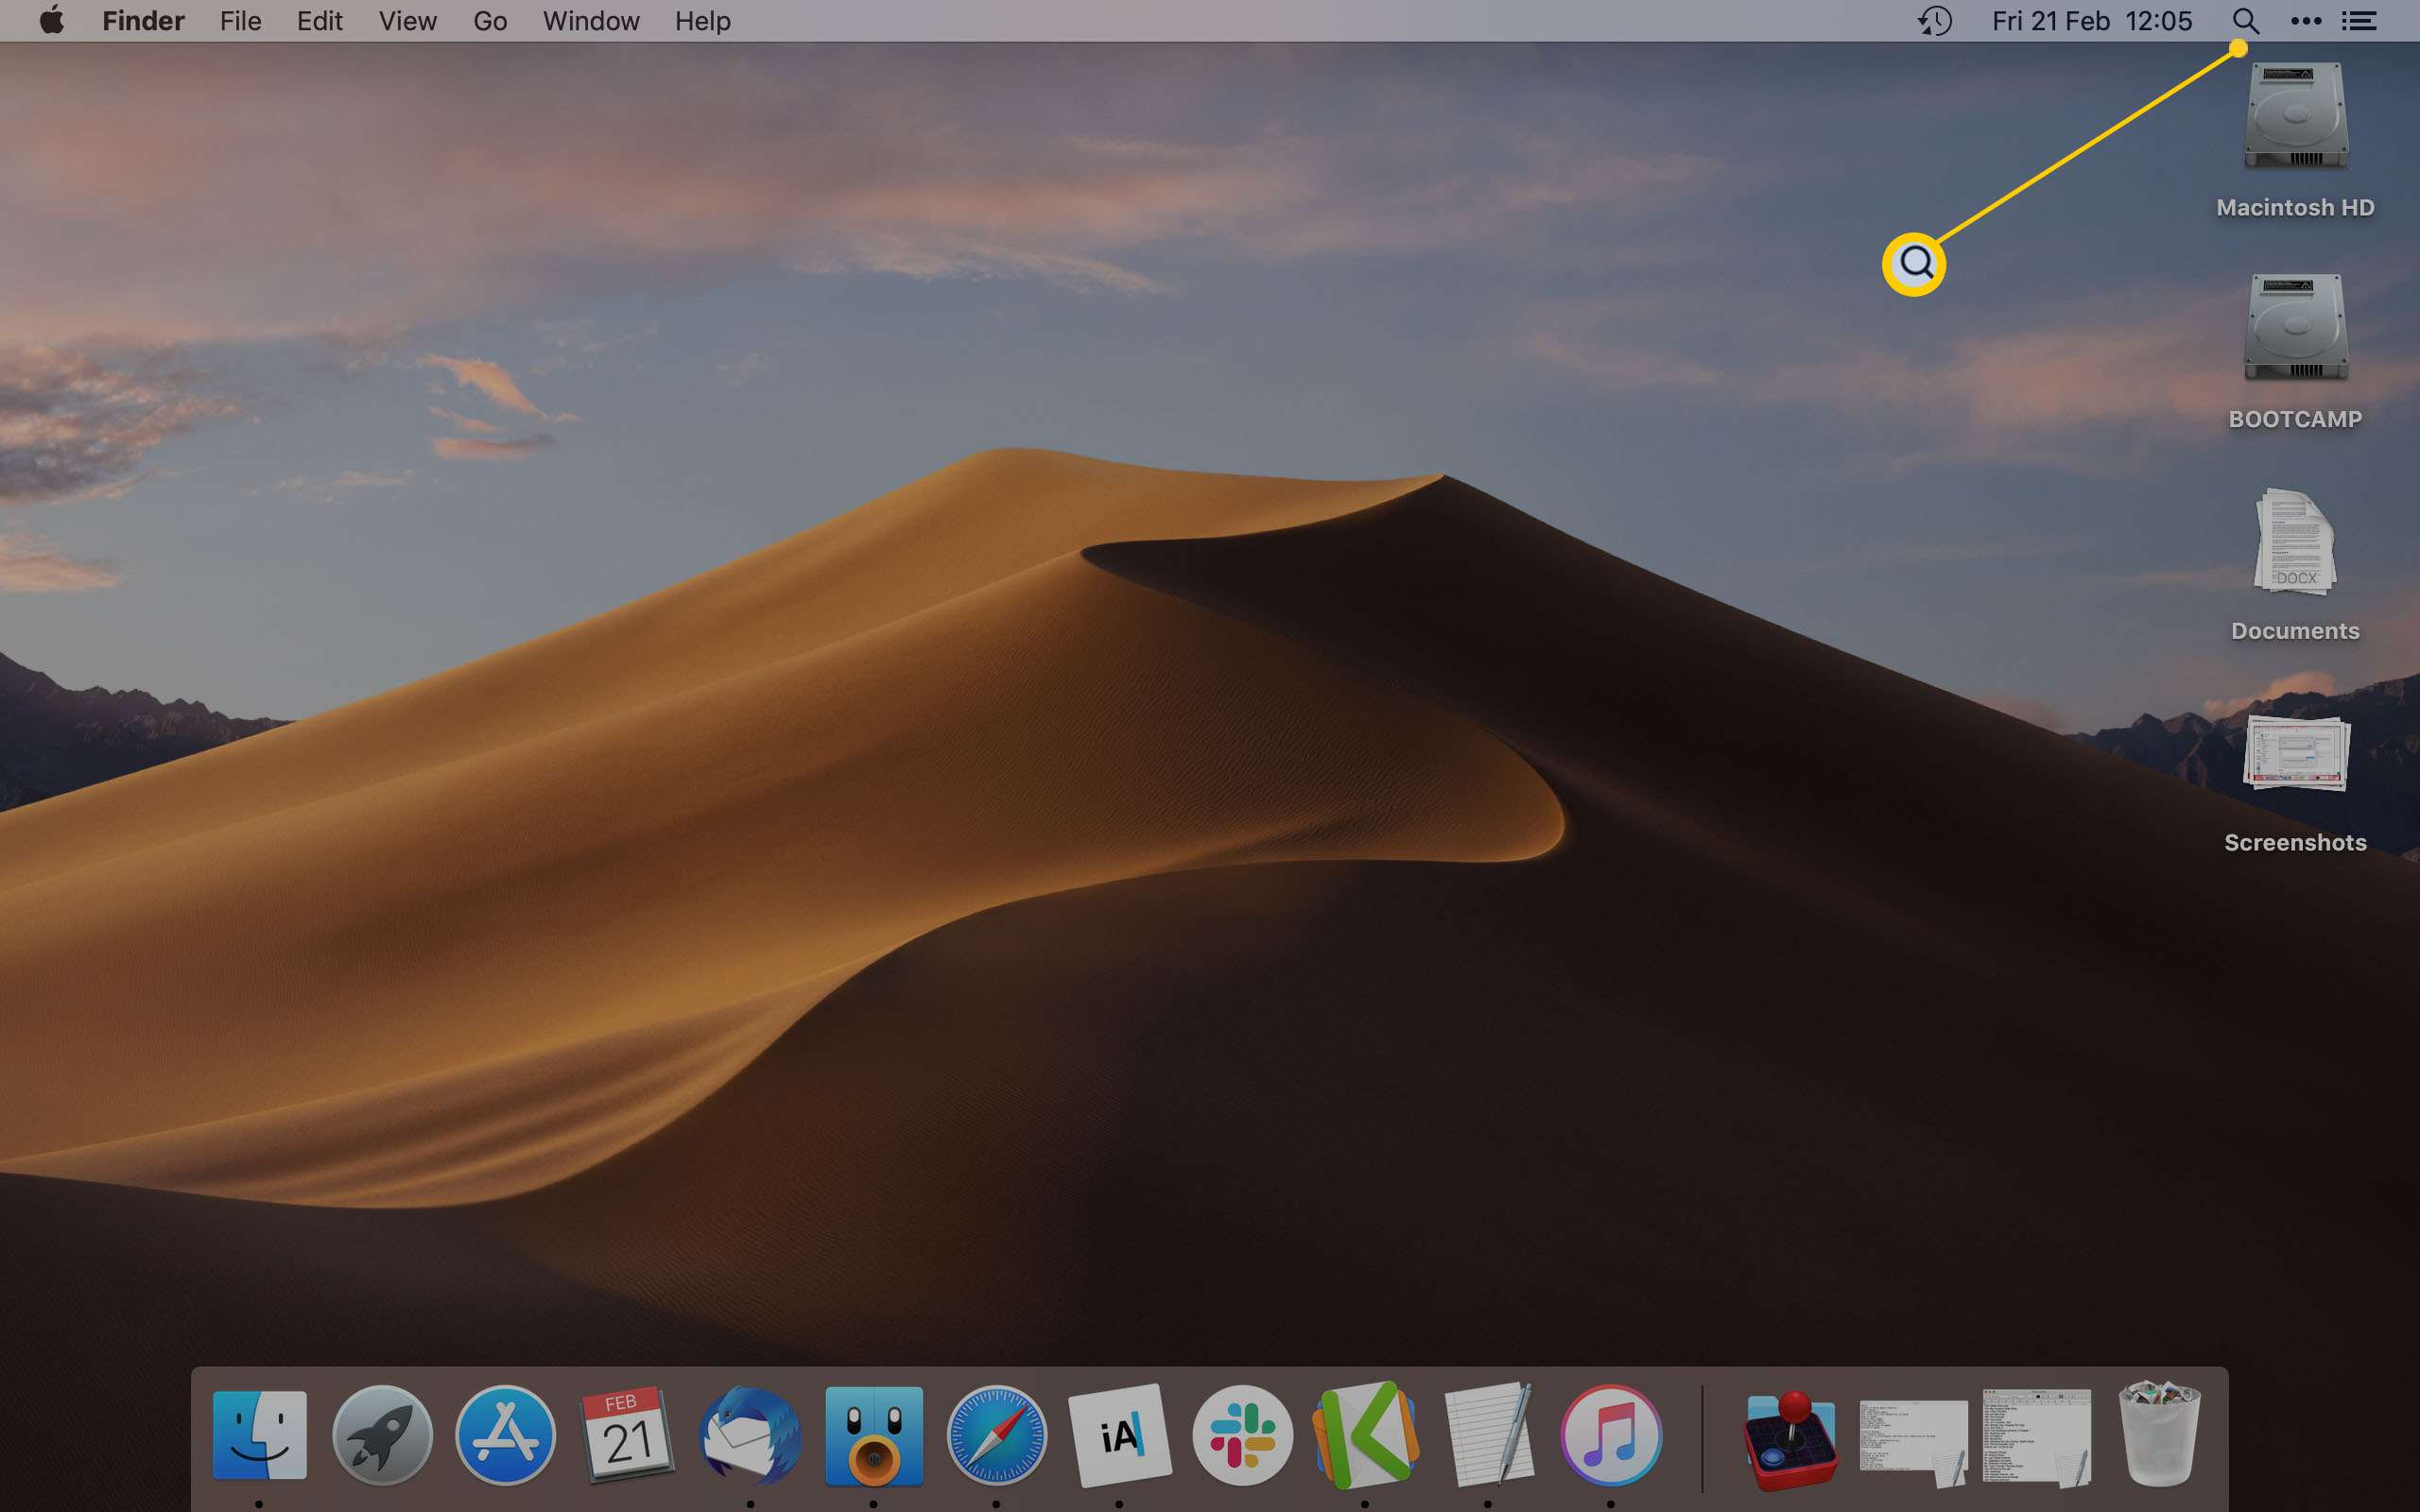 Mac home screen with magnifier glass icon highlighted